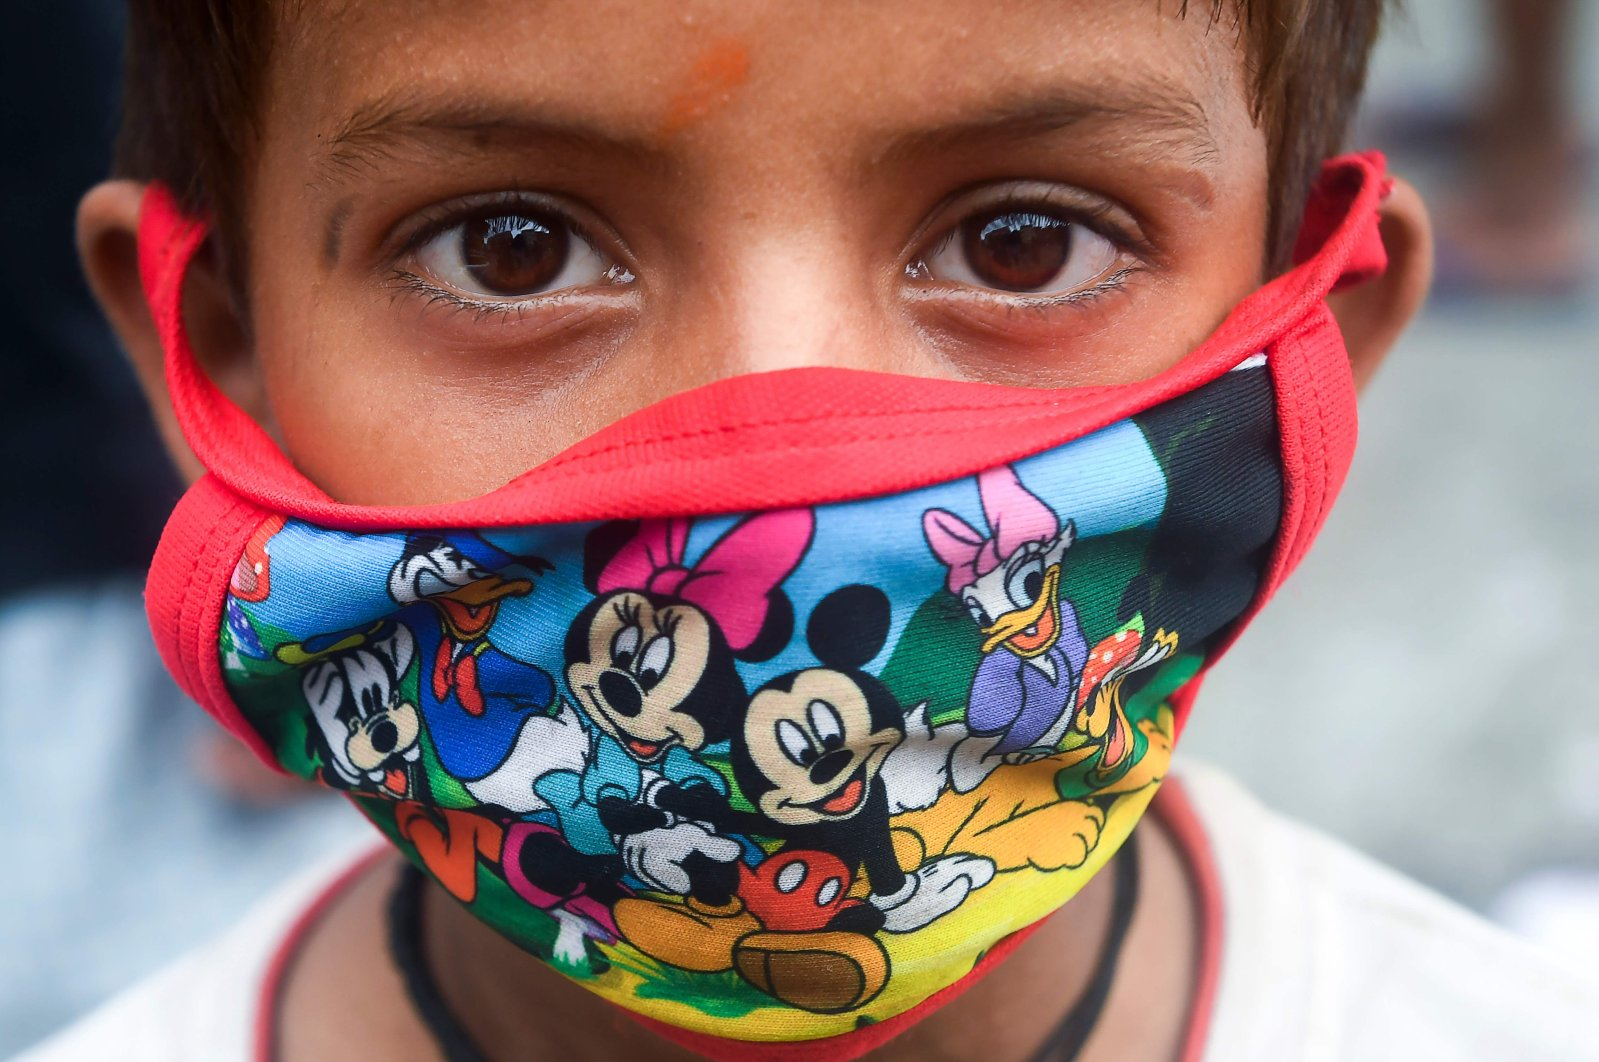 A child wears a face mask depicting Disney characters amid concerns over the spread of the coronavirus, in Kolkata, India, July 21, 2020. (AFP Photo)